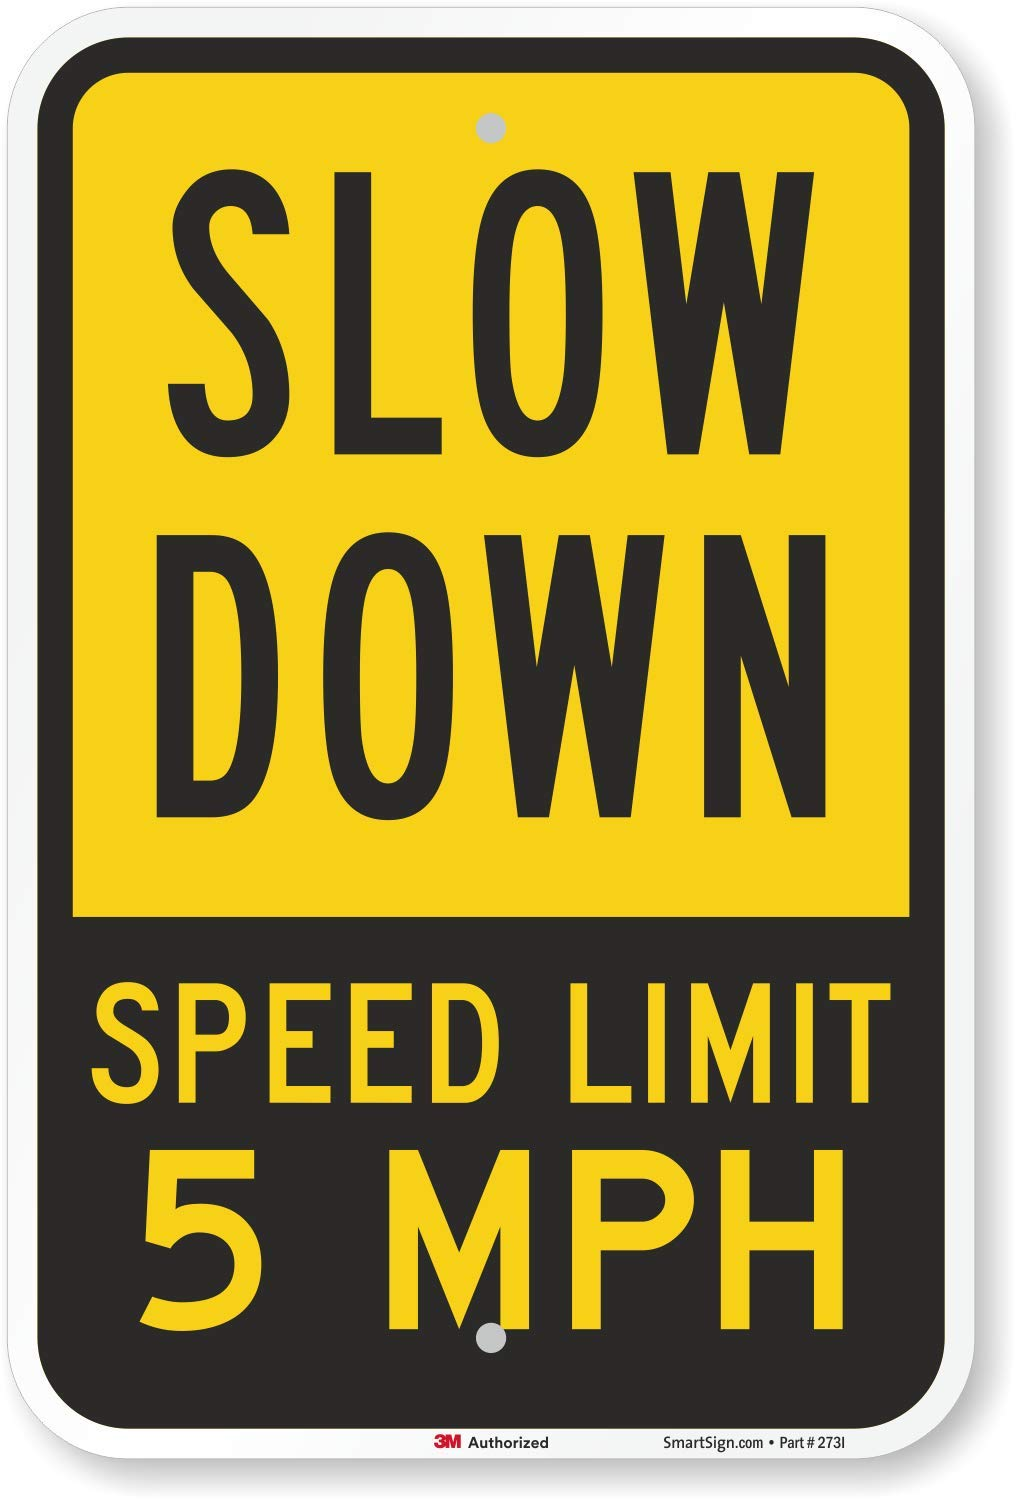 SPEED LIMIT 30 mph Outdoor Metal sign slow warning traffic road street